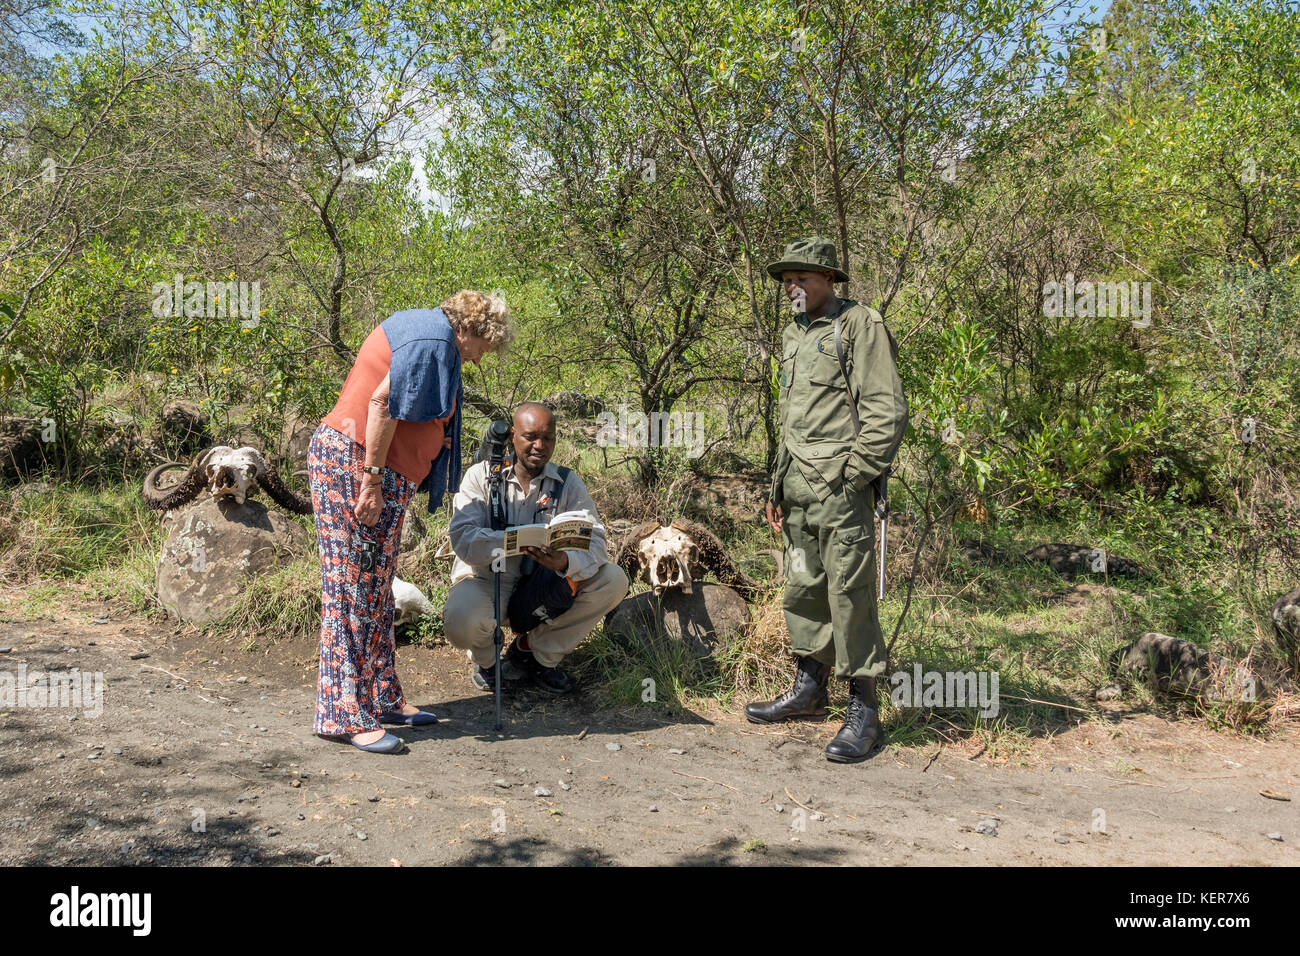 Guide and tourist examining buffalo skulls with a ranger 1, Arusha NP, Tanzania - Stock Image